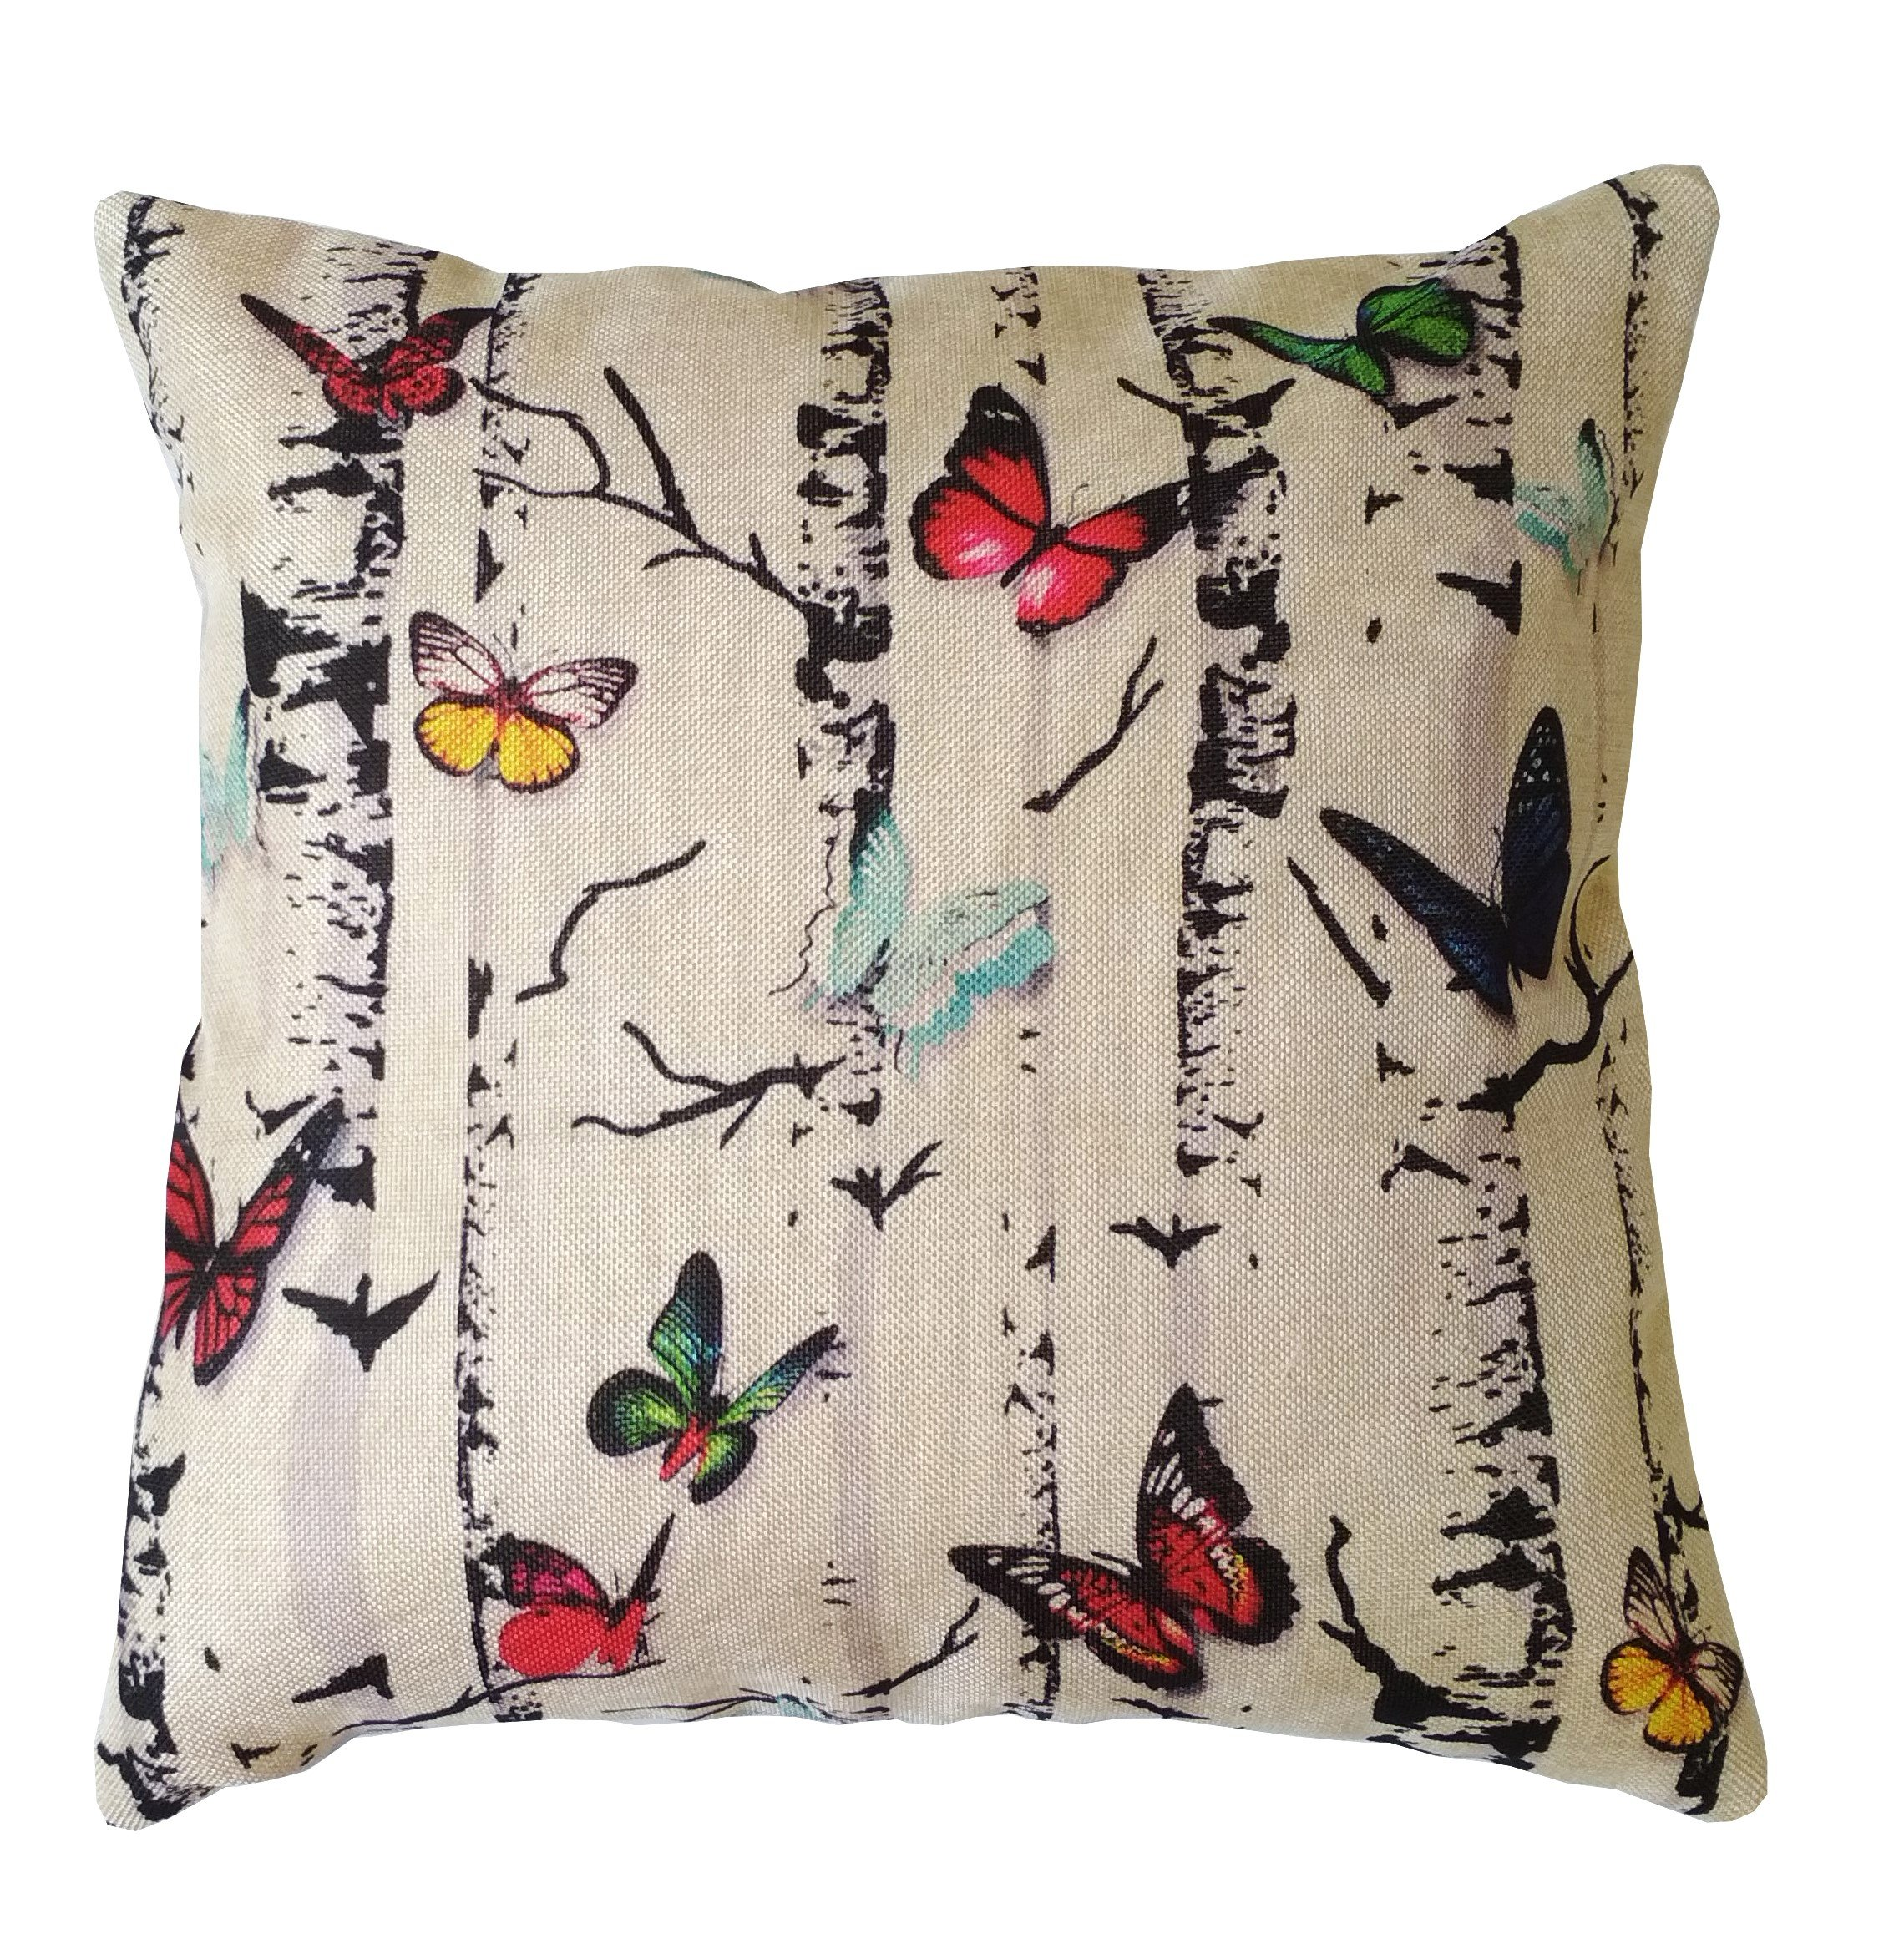 Vantage Decor 16'' x 16'' with Insert Decorative Print Pillow Cover Luxury Square Cushion for Sofa Bedroom Car and Living Room Butterfly Wood Print Gifts for All